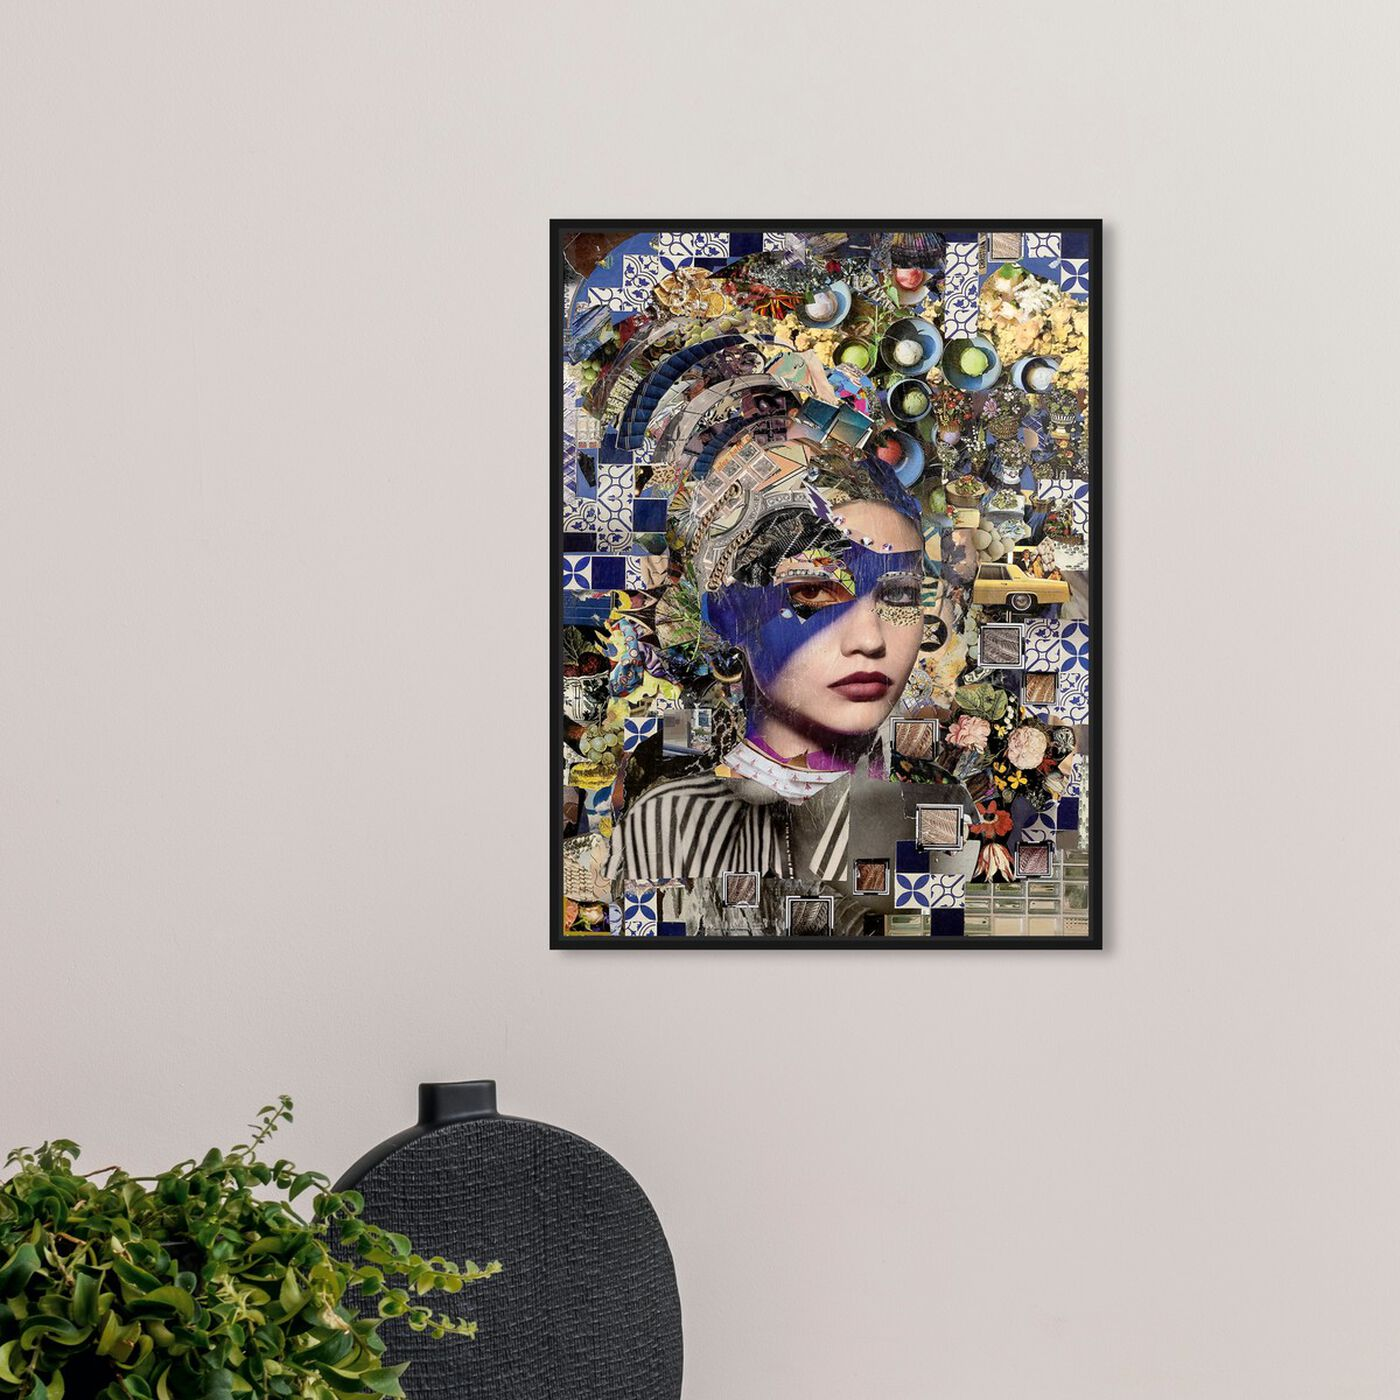 Hanging view of Katy Hirschfeld - Beauty in Blue featuring fashion and glam and portraits art.